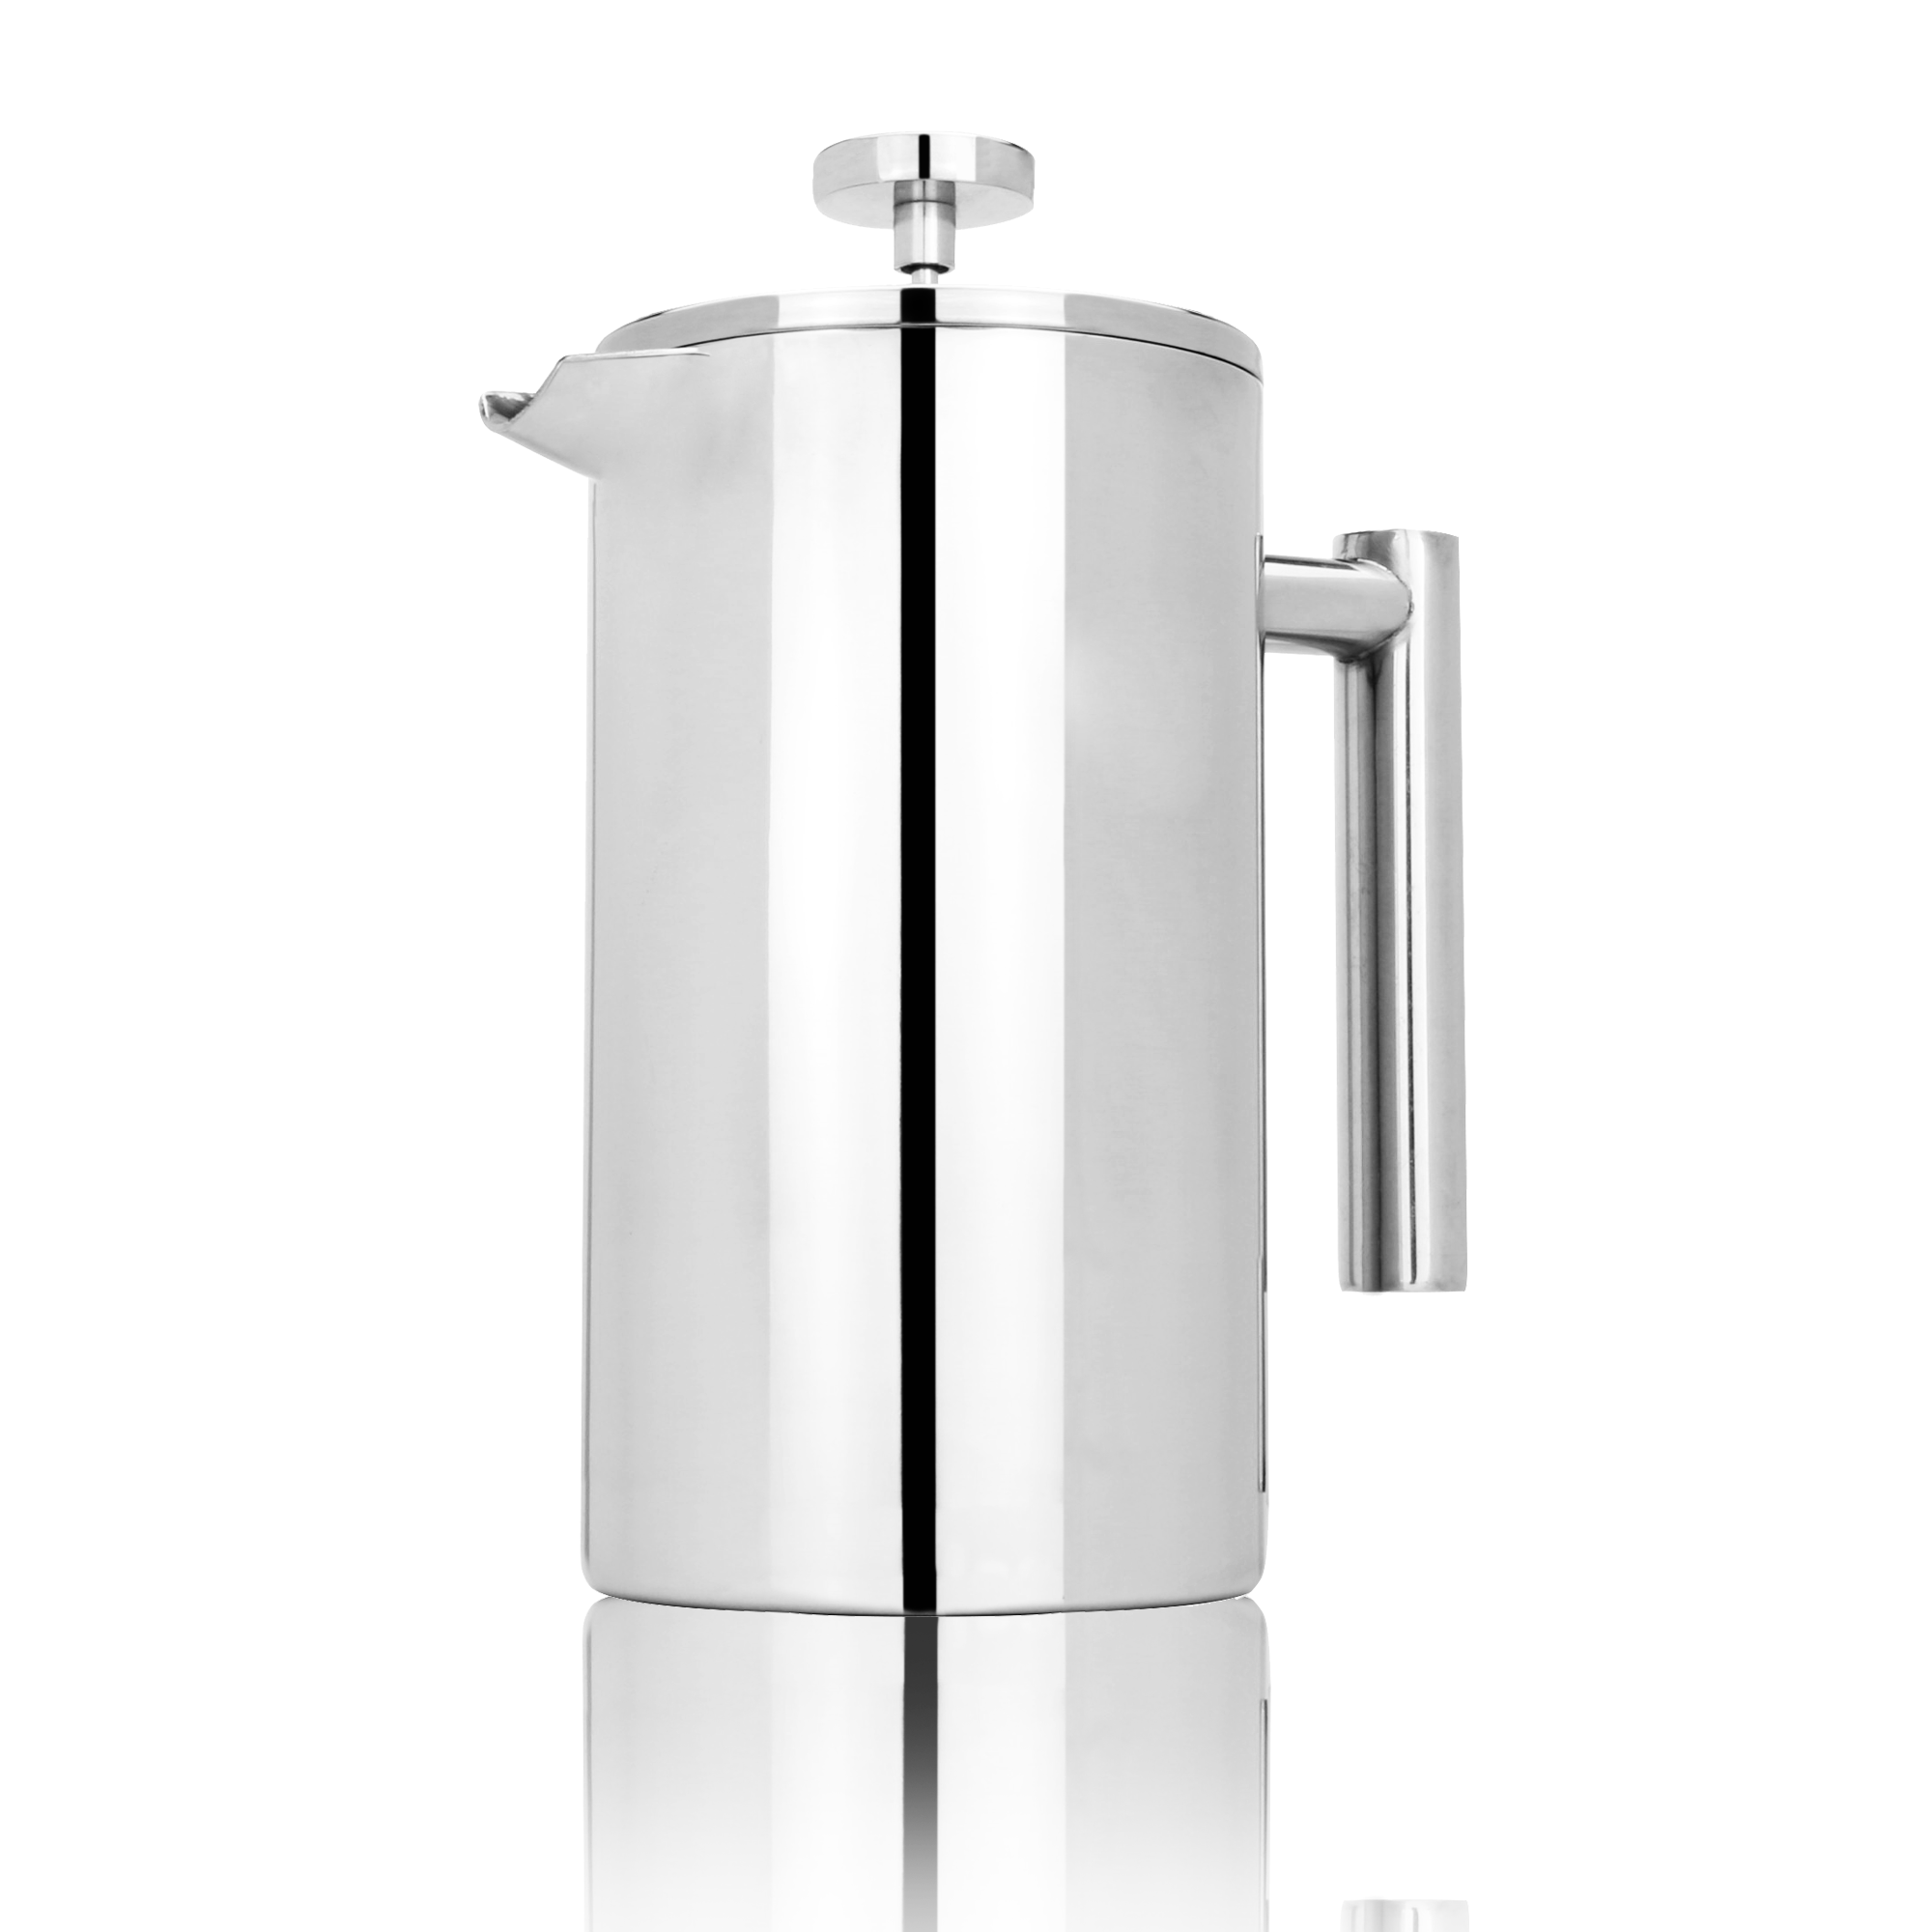 French-Press-Cafetiere-Steel-Coffee-Maker-FREE-Filters-amp-Spoons-M-amp-W miniatura 13